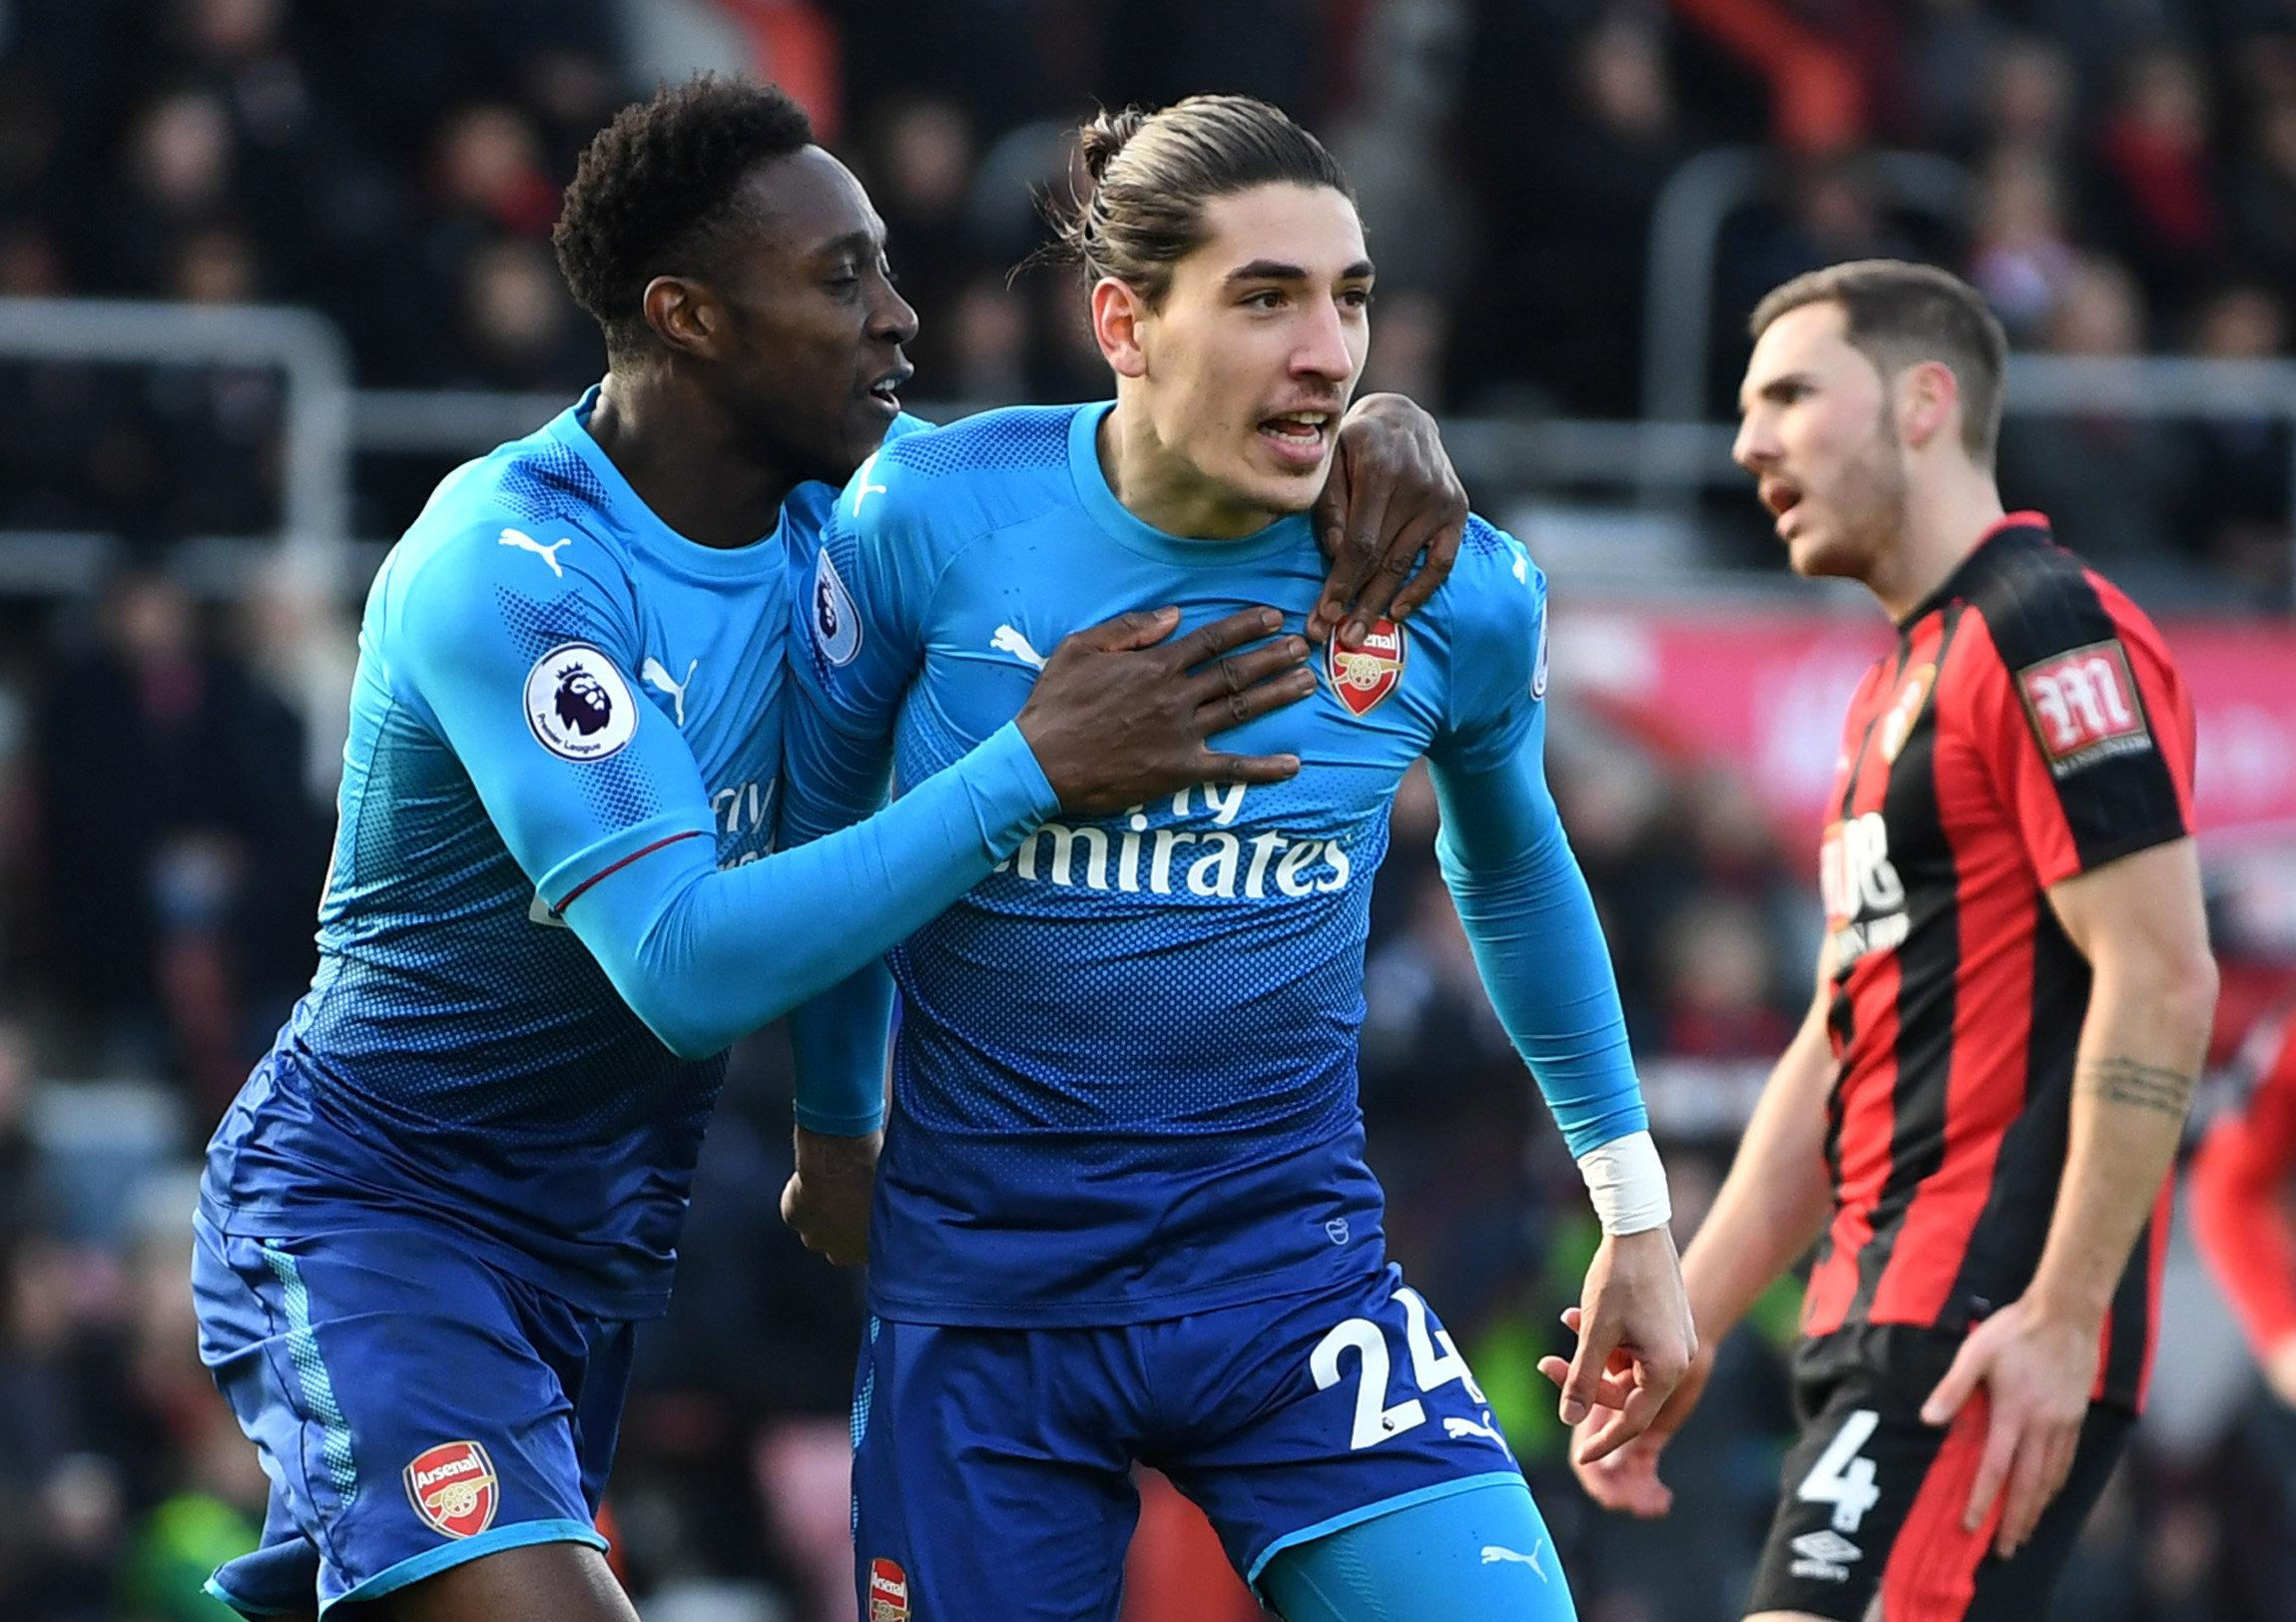 Hector Bellerin and Danny Welbeck have already put together their Tidal playlist